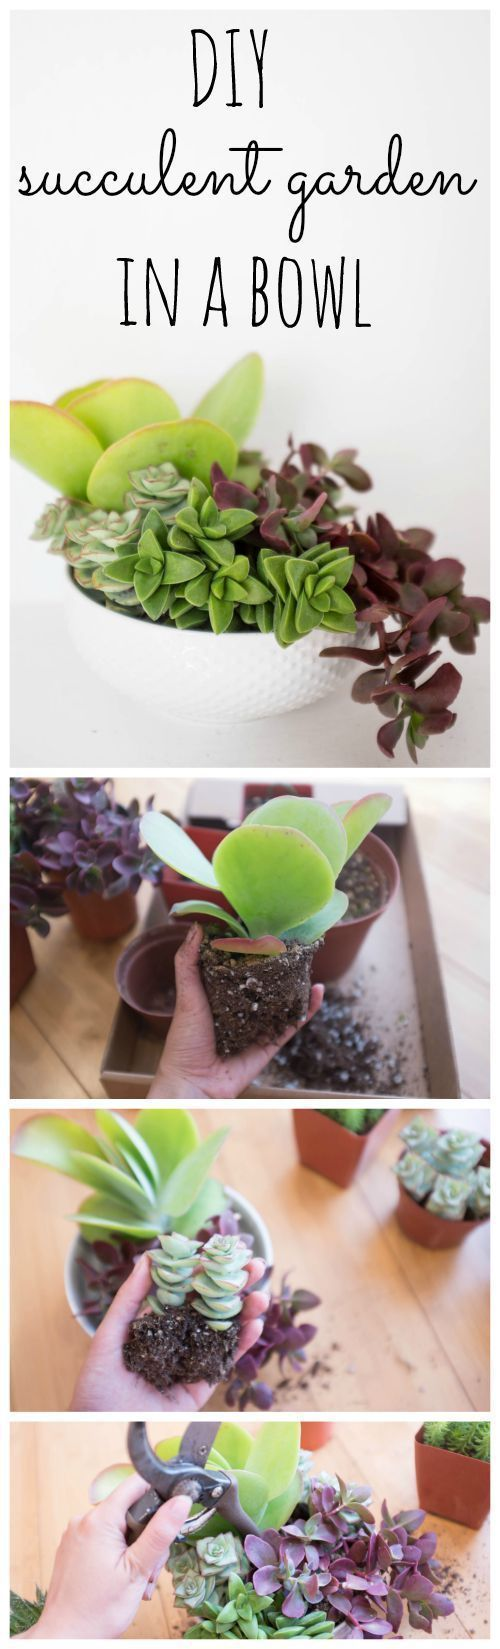 """This is a perfect succulent project to create using Southern Patio's 16"""" Sydney Bowl: http://www.southernpatio.com/products/bowl/hdp-021162-16-sydney-bowl-irish-cream/"""